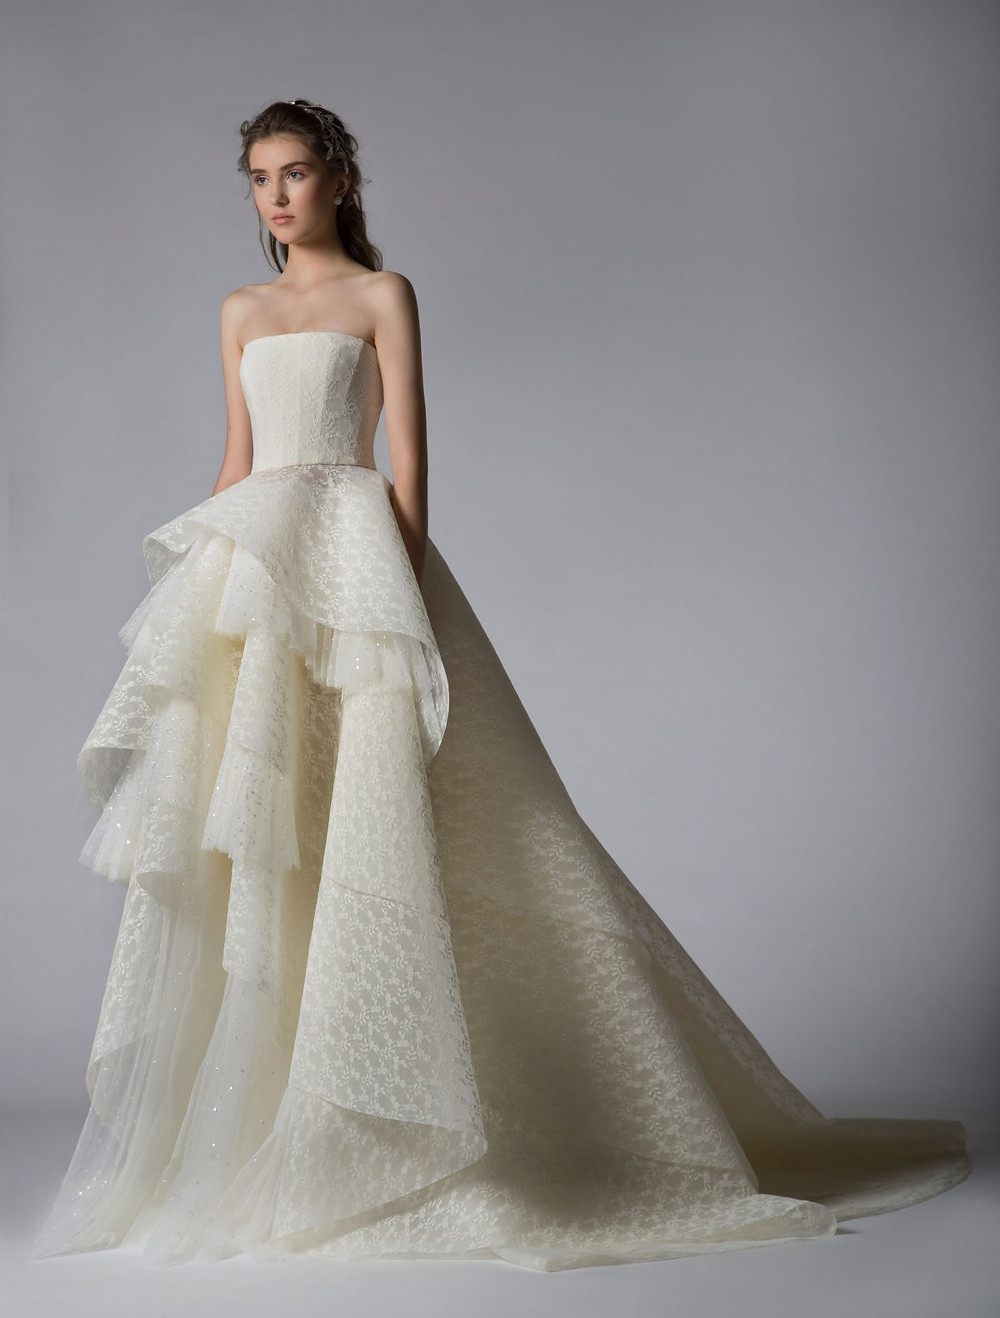 A Georges Hobeika strapless ball gown wedding dress with a layered skirt